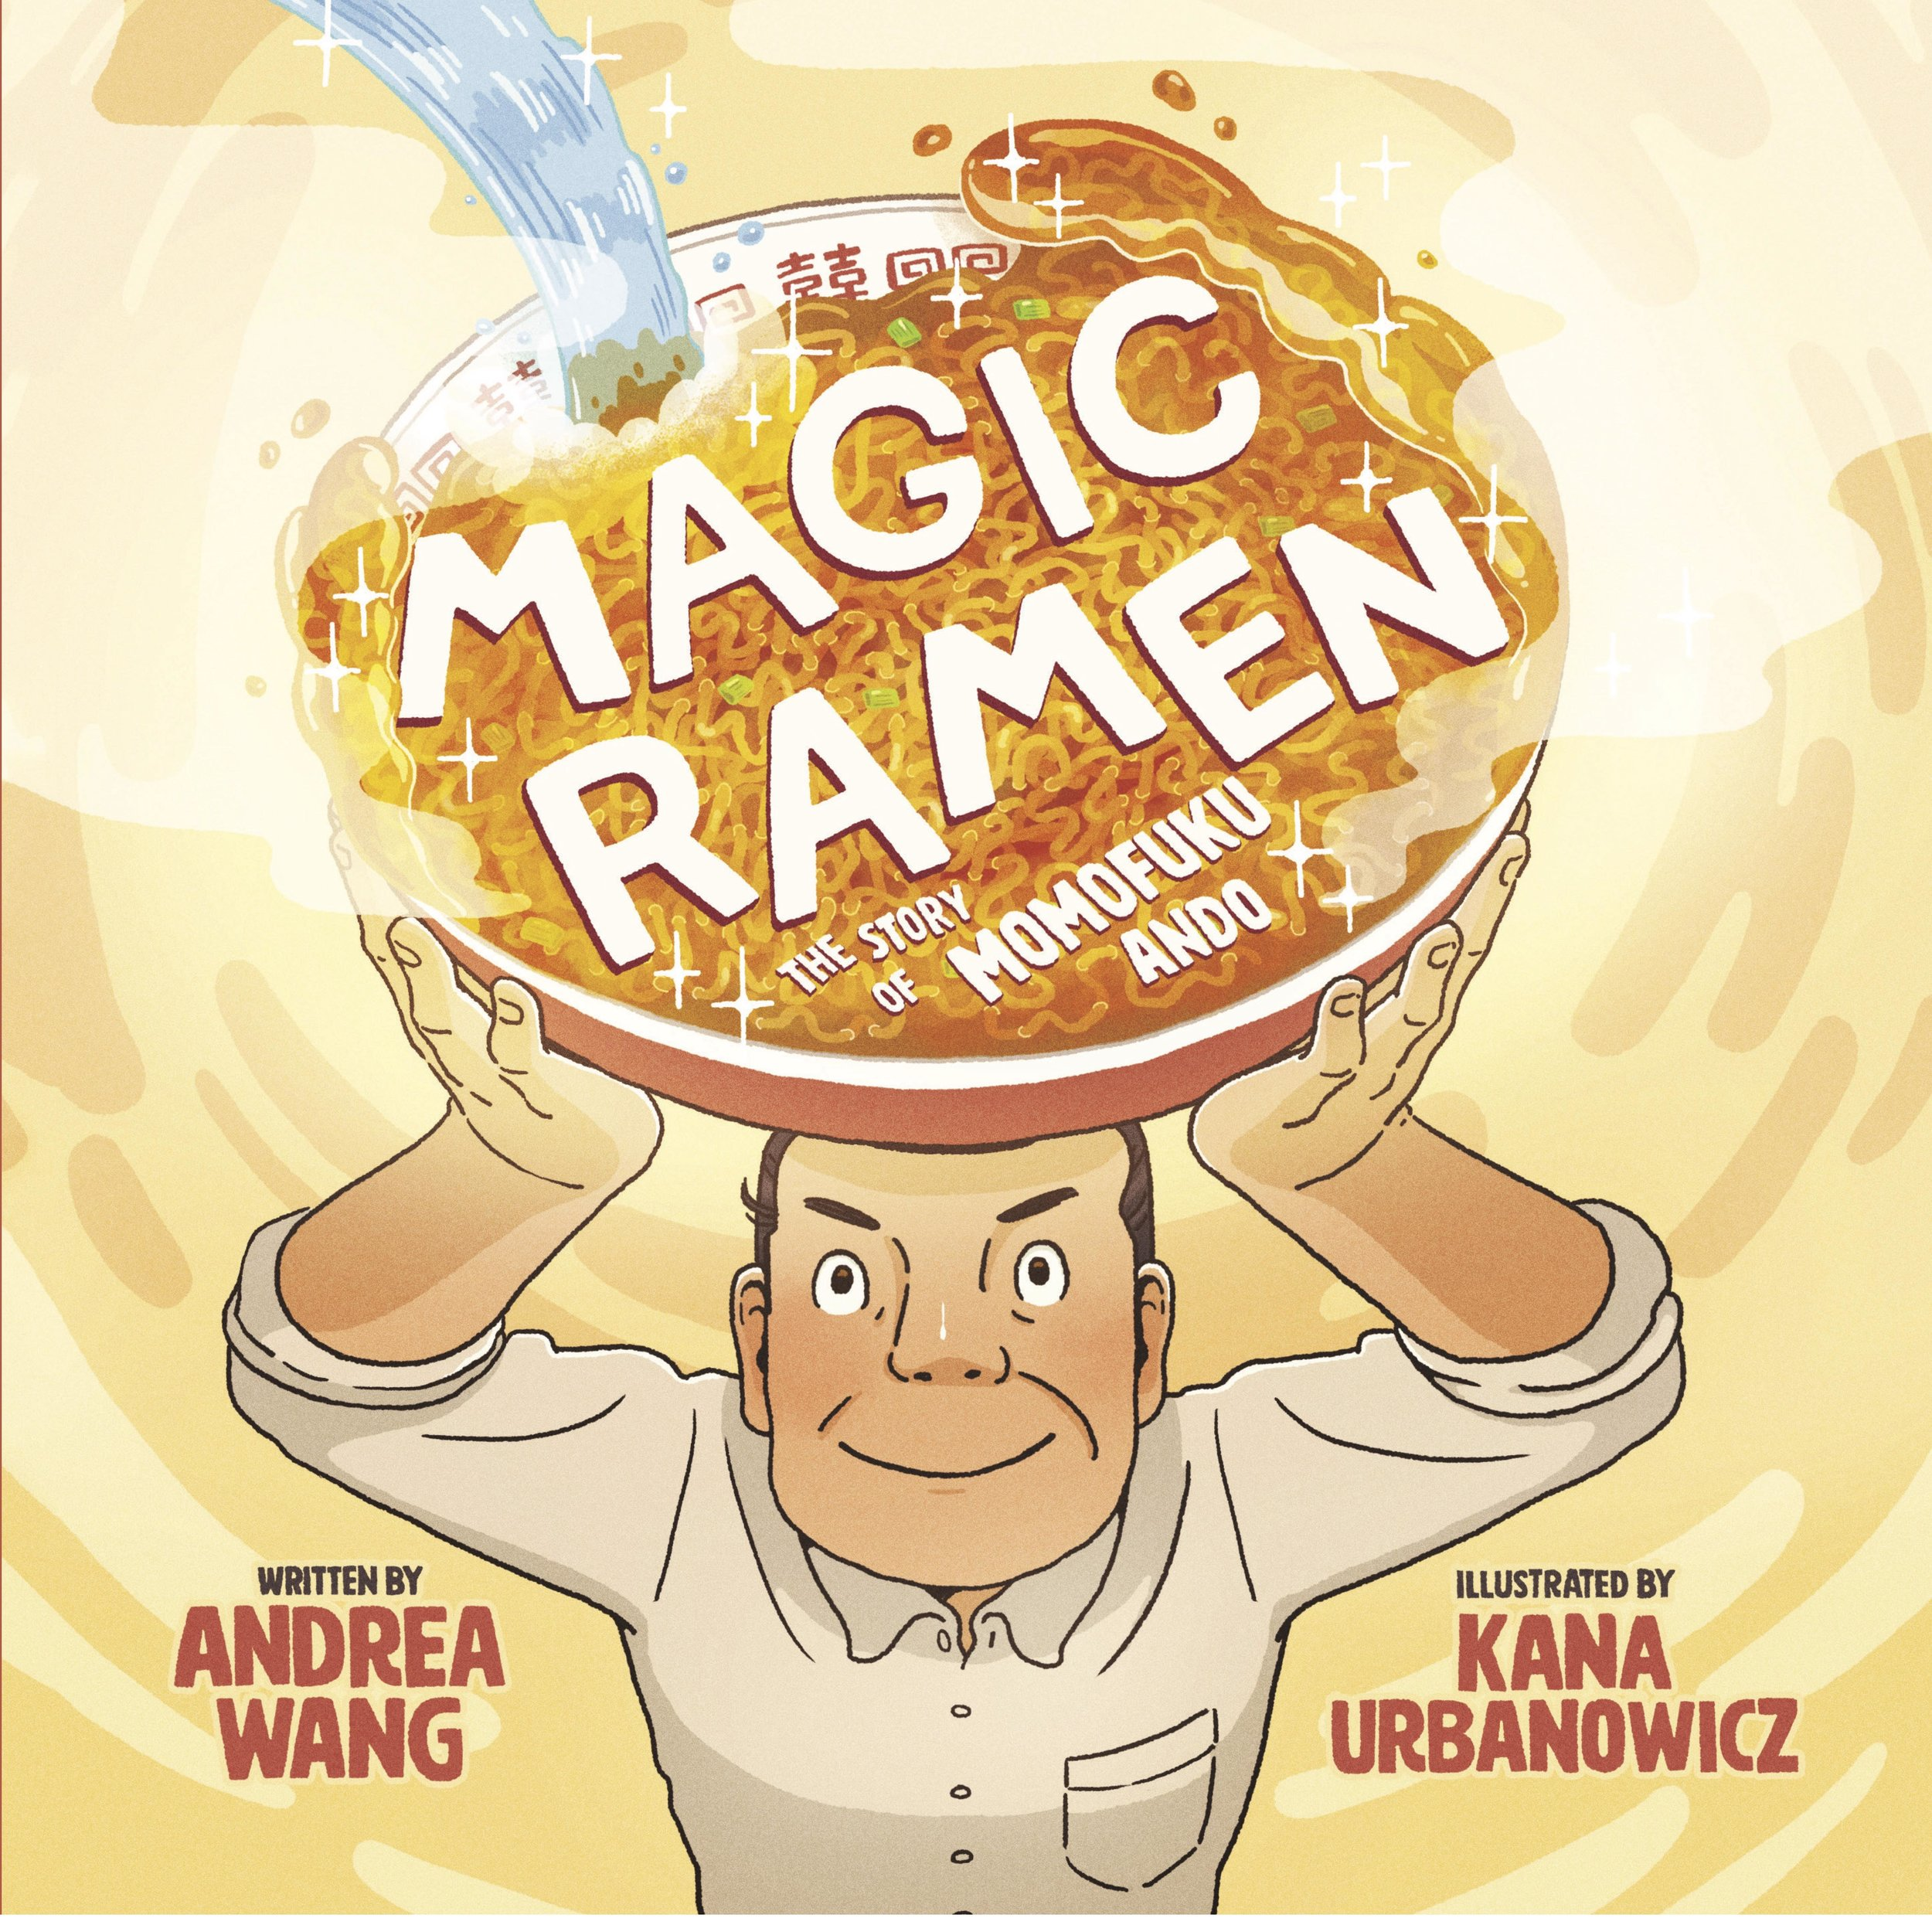 Magic Ramen, the Story of Momfuku Ando  by Andrea Wang, illustrated by Kana Urbanowicz. Published by little bee books